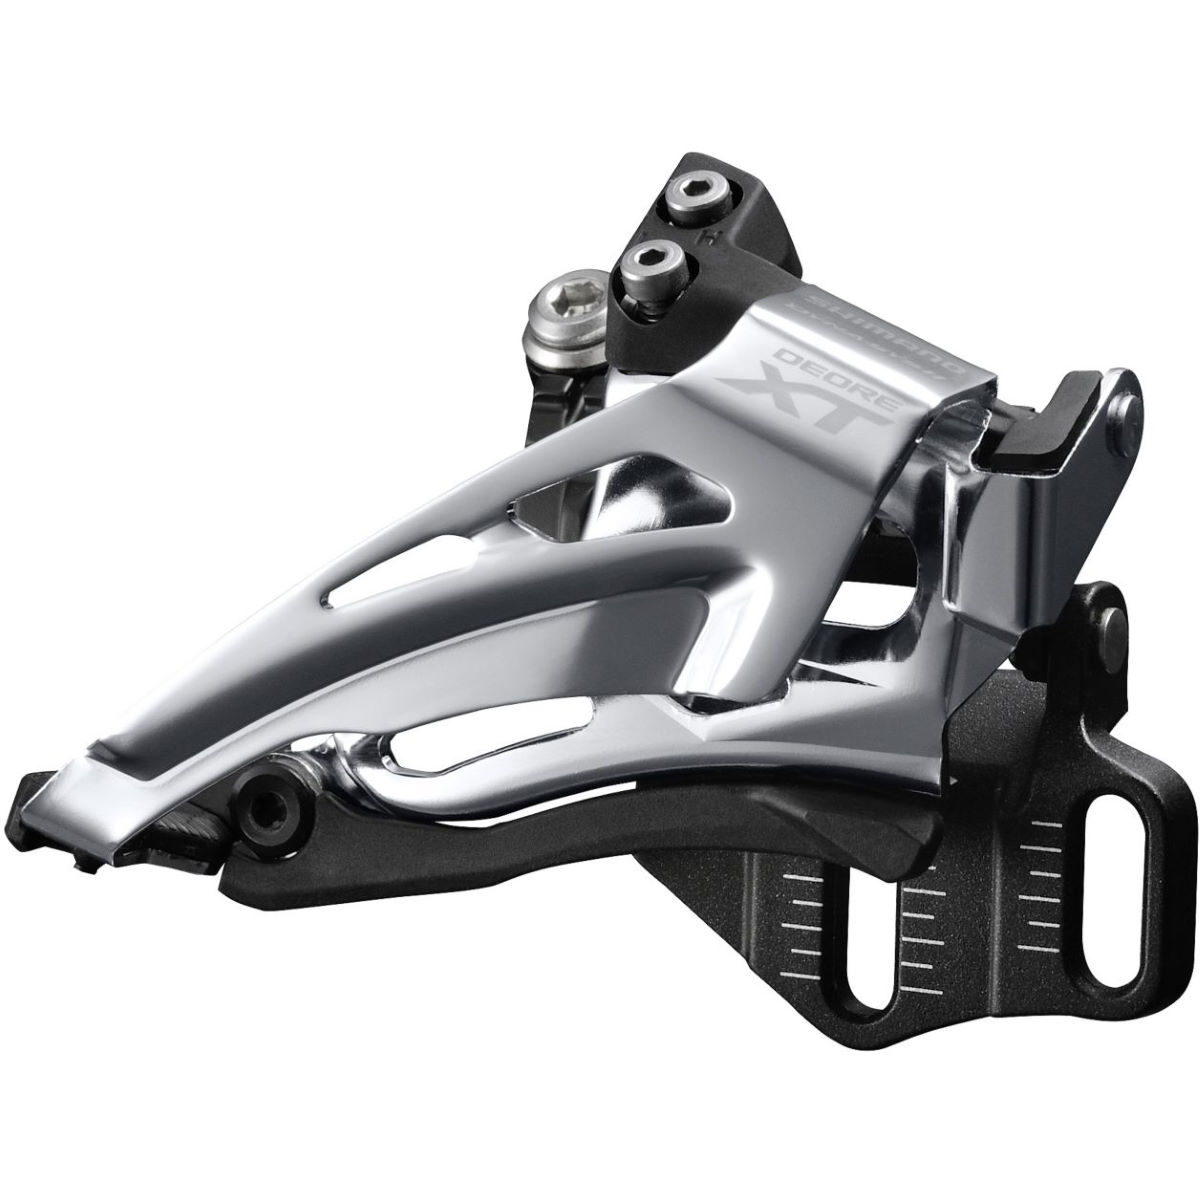 Shimano M0825 11 Speed Front Derailleur - Low Direct Mount Low